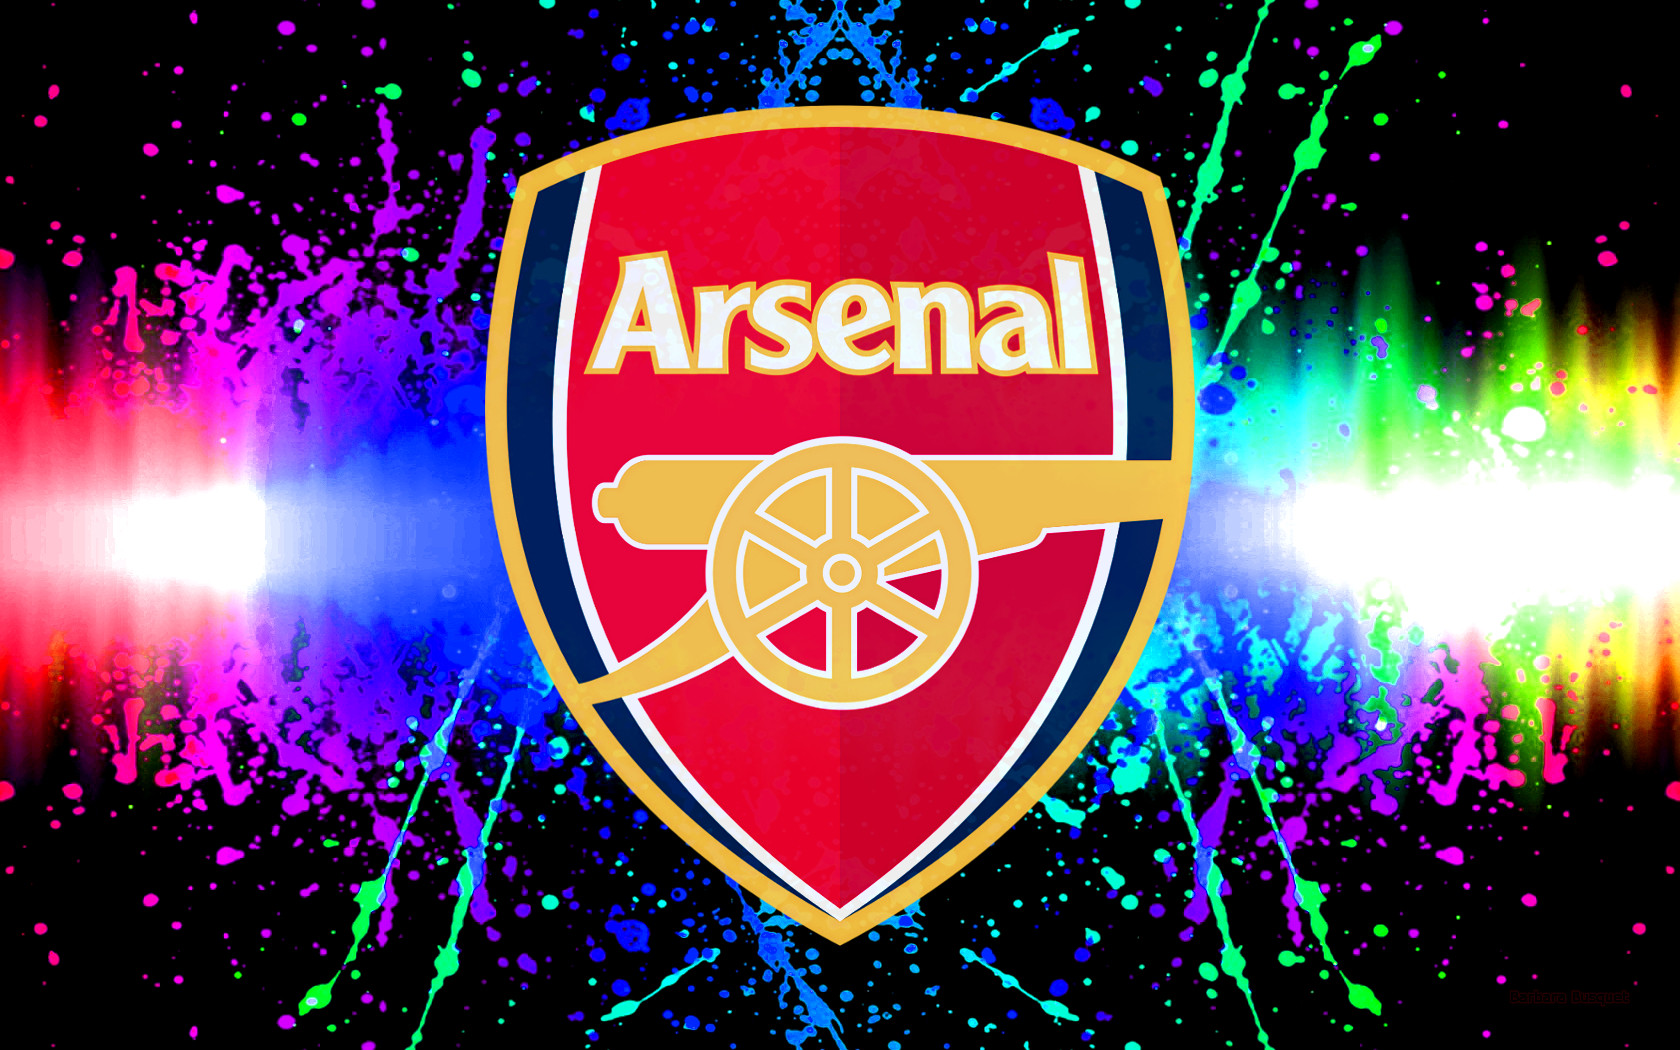 Fall Colors Mobile Wallpaper Arsenal Fc Logo Wallpapers Barbaras Hd Wallpapers